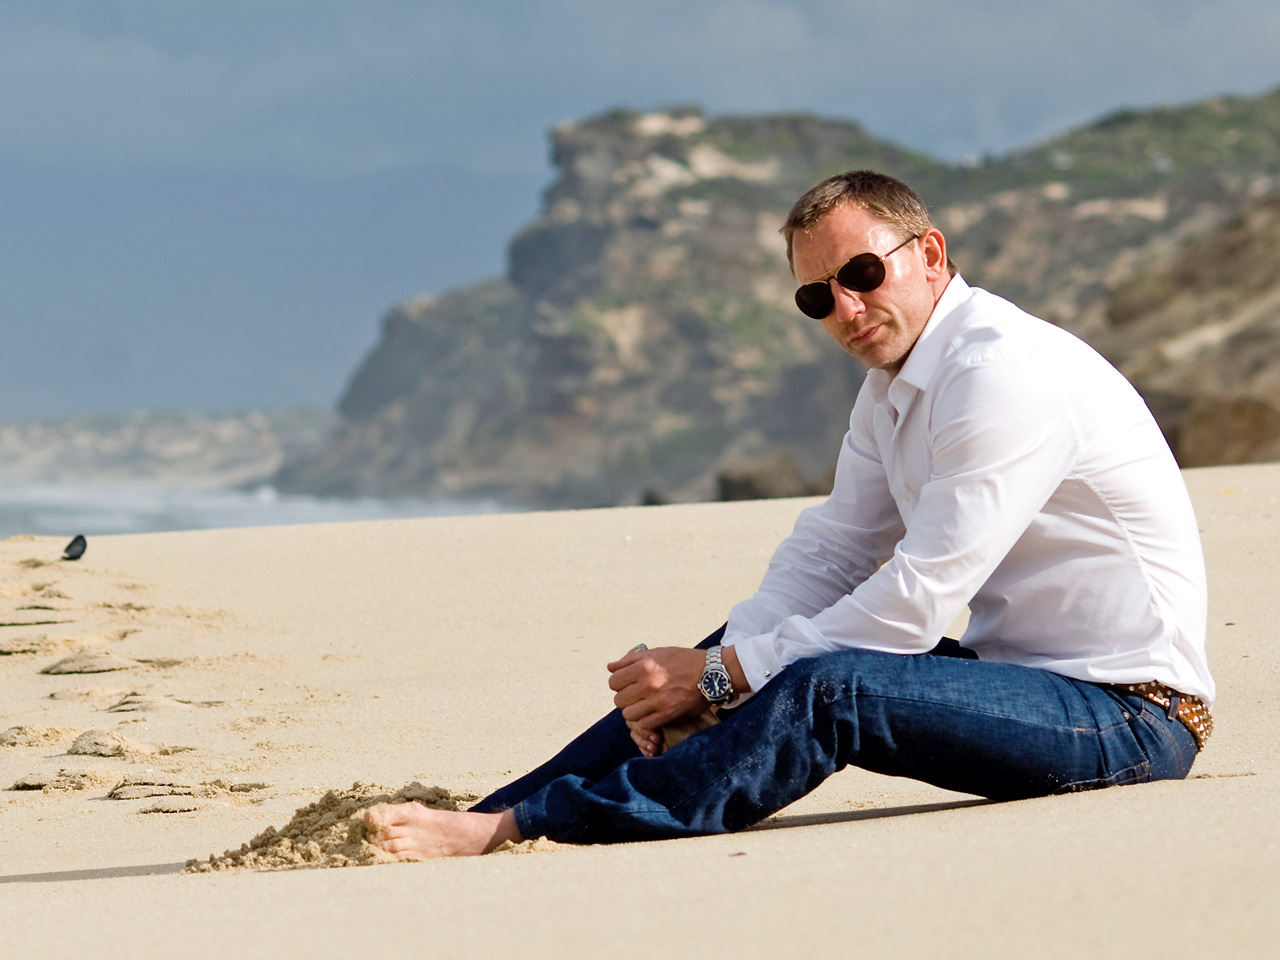 daniel-craig-white-shirt-blue-jeans-on-beach-wallpaper20.jpg